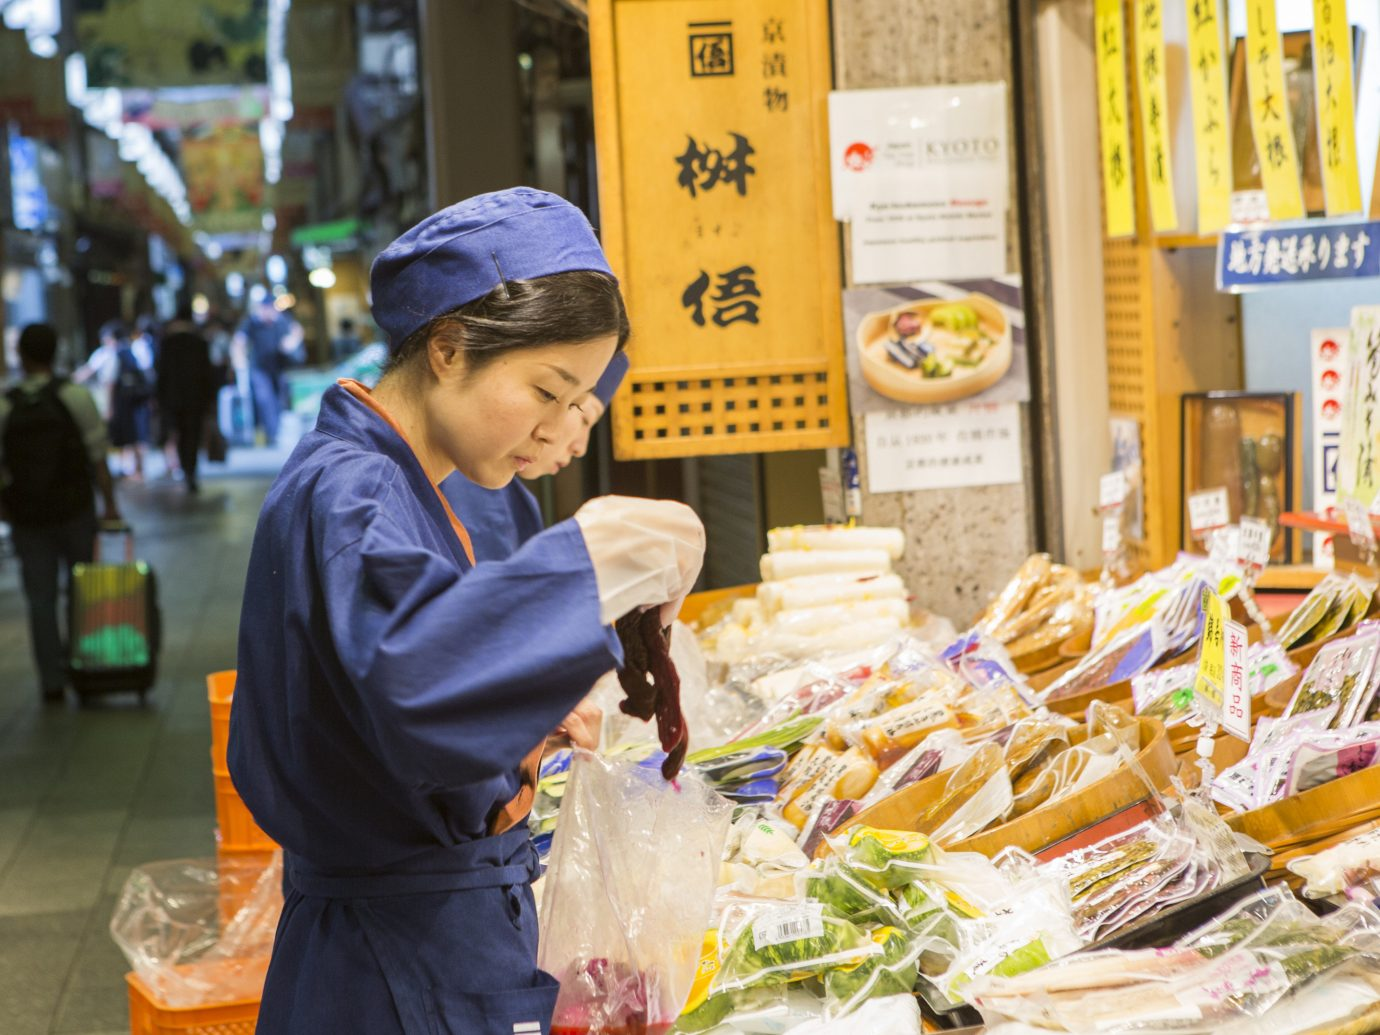 Beauty Health + Wellness Japan Kyoto San Francisco Travel Tips person market food vendor marketplace public space produce street food selling shopkeeper bazaar street stall local food snack food